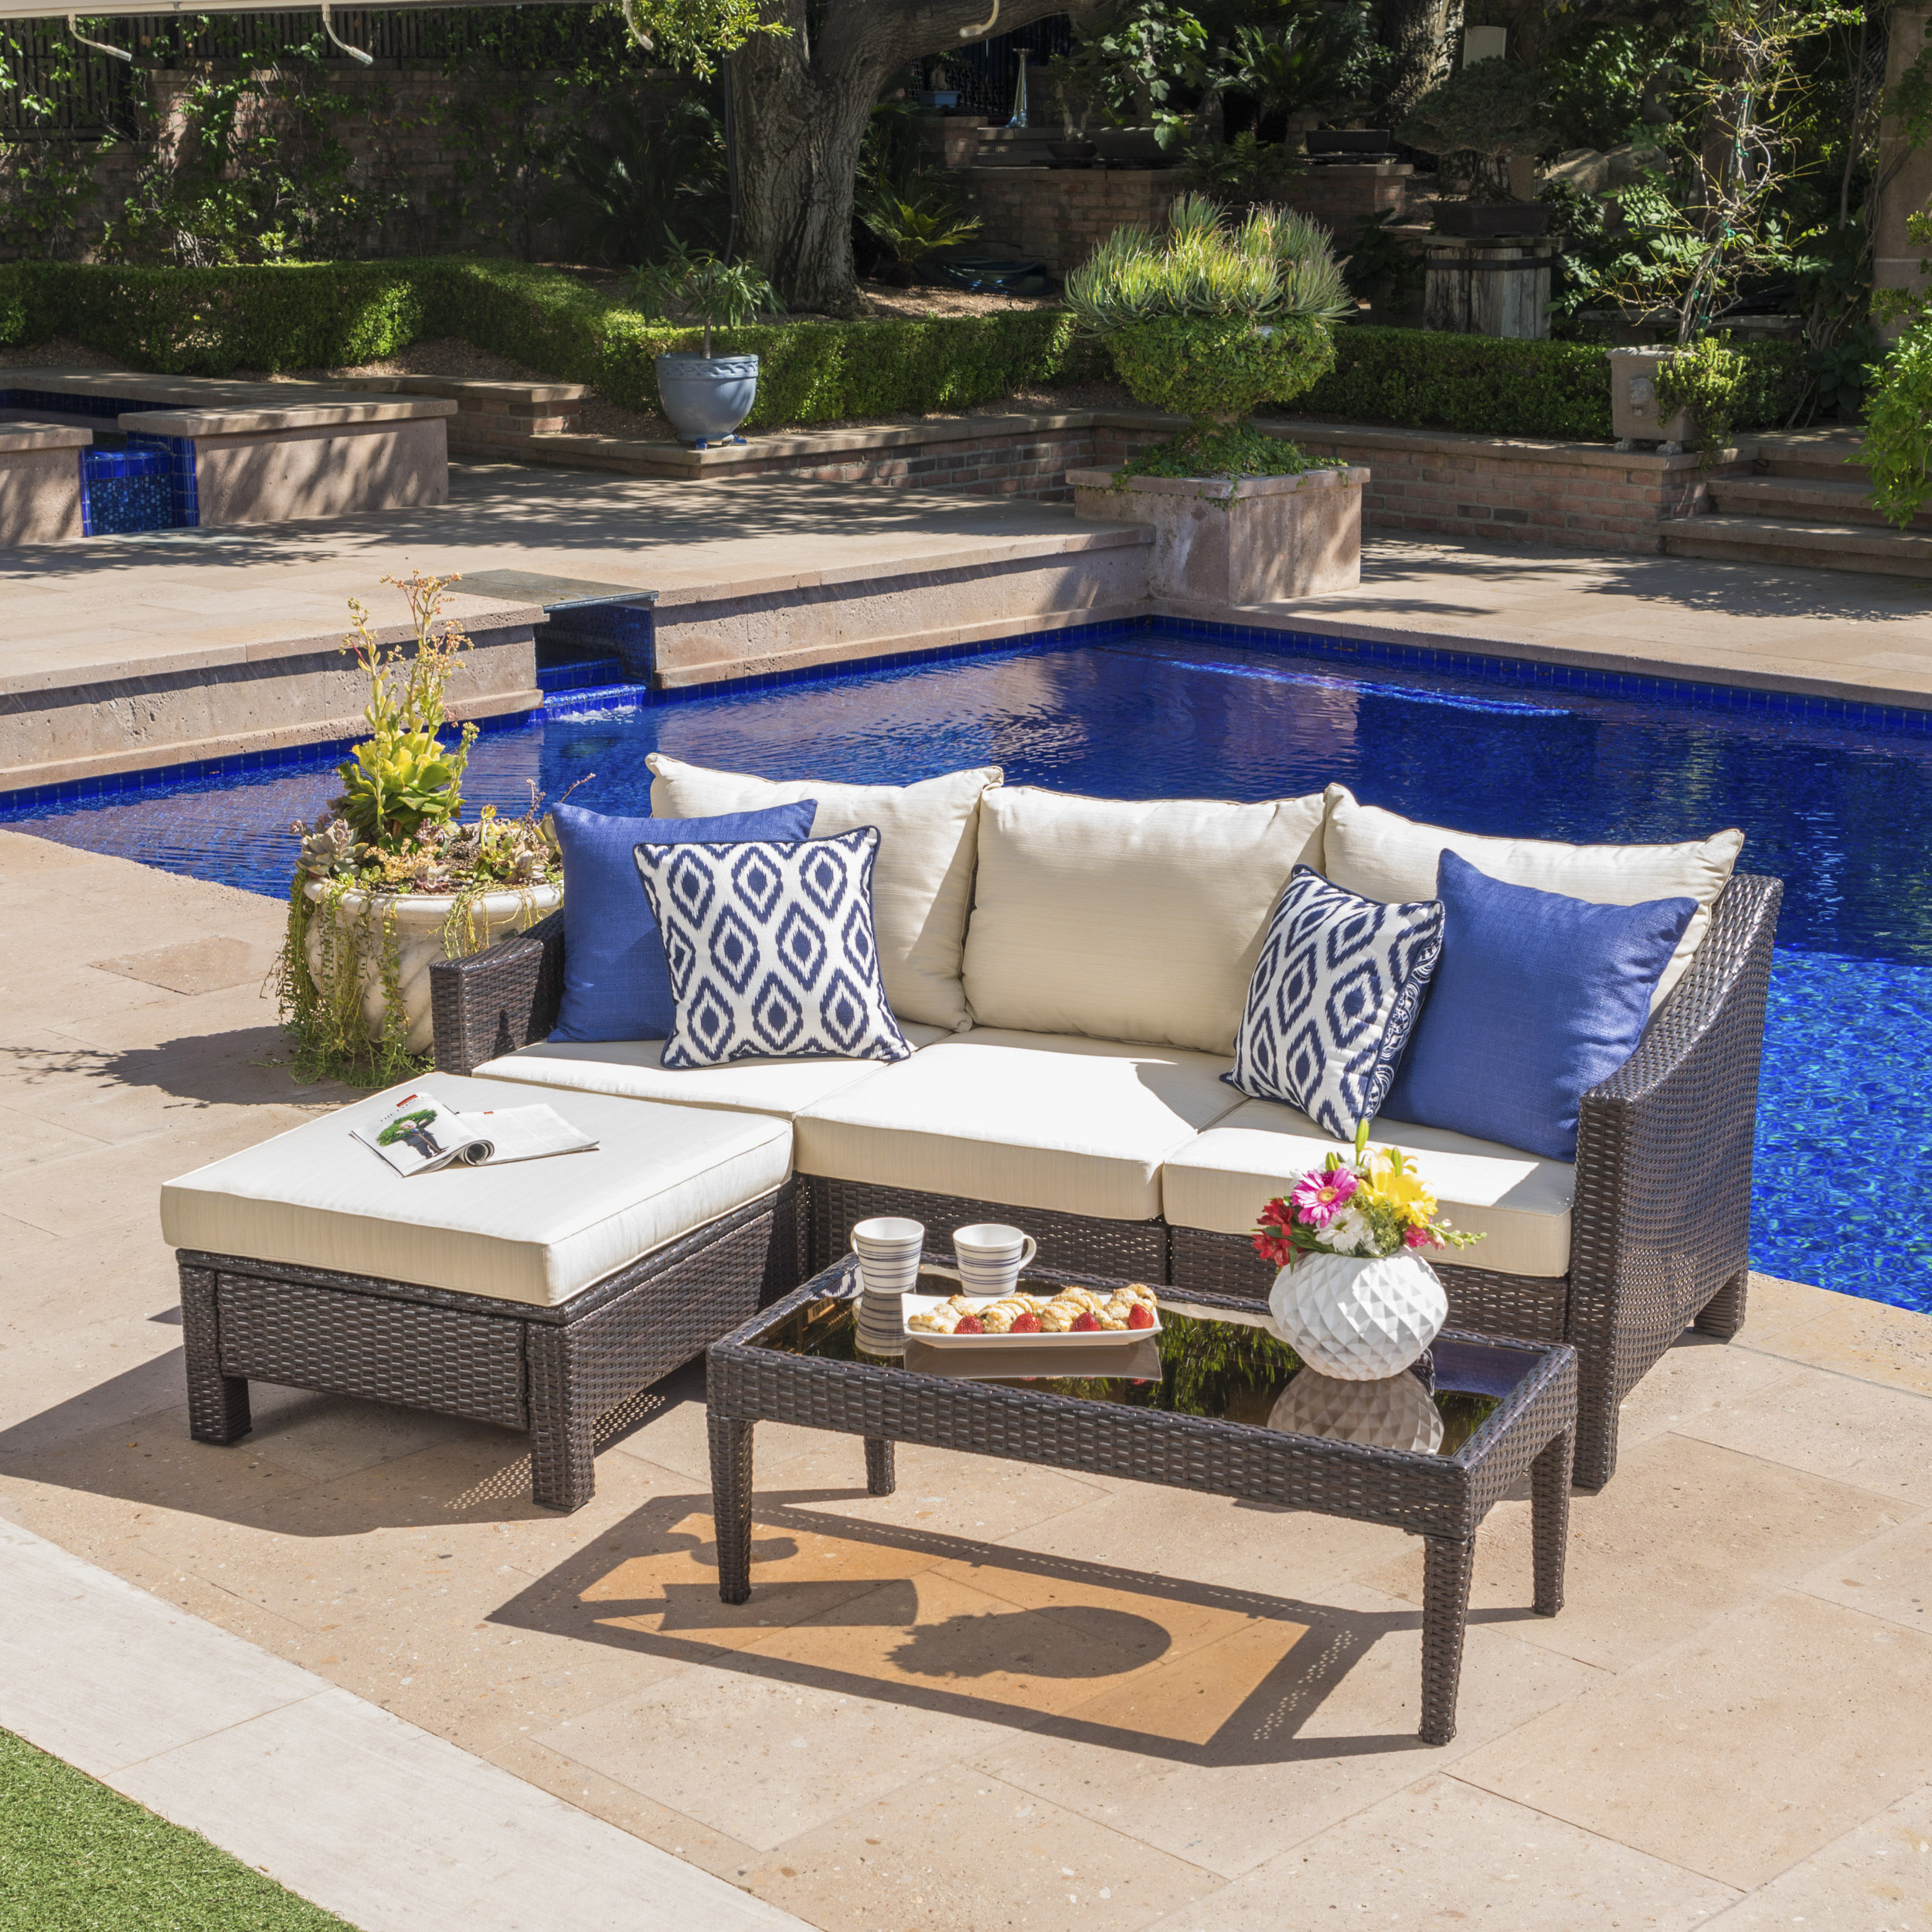 Beau Estelle Outdoor L Shaped Wicker Sectional Sofa Set With Cushions,  Multibrown, Beige